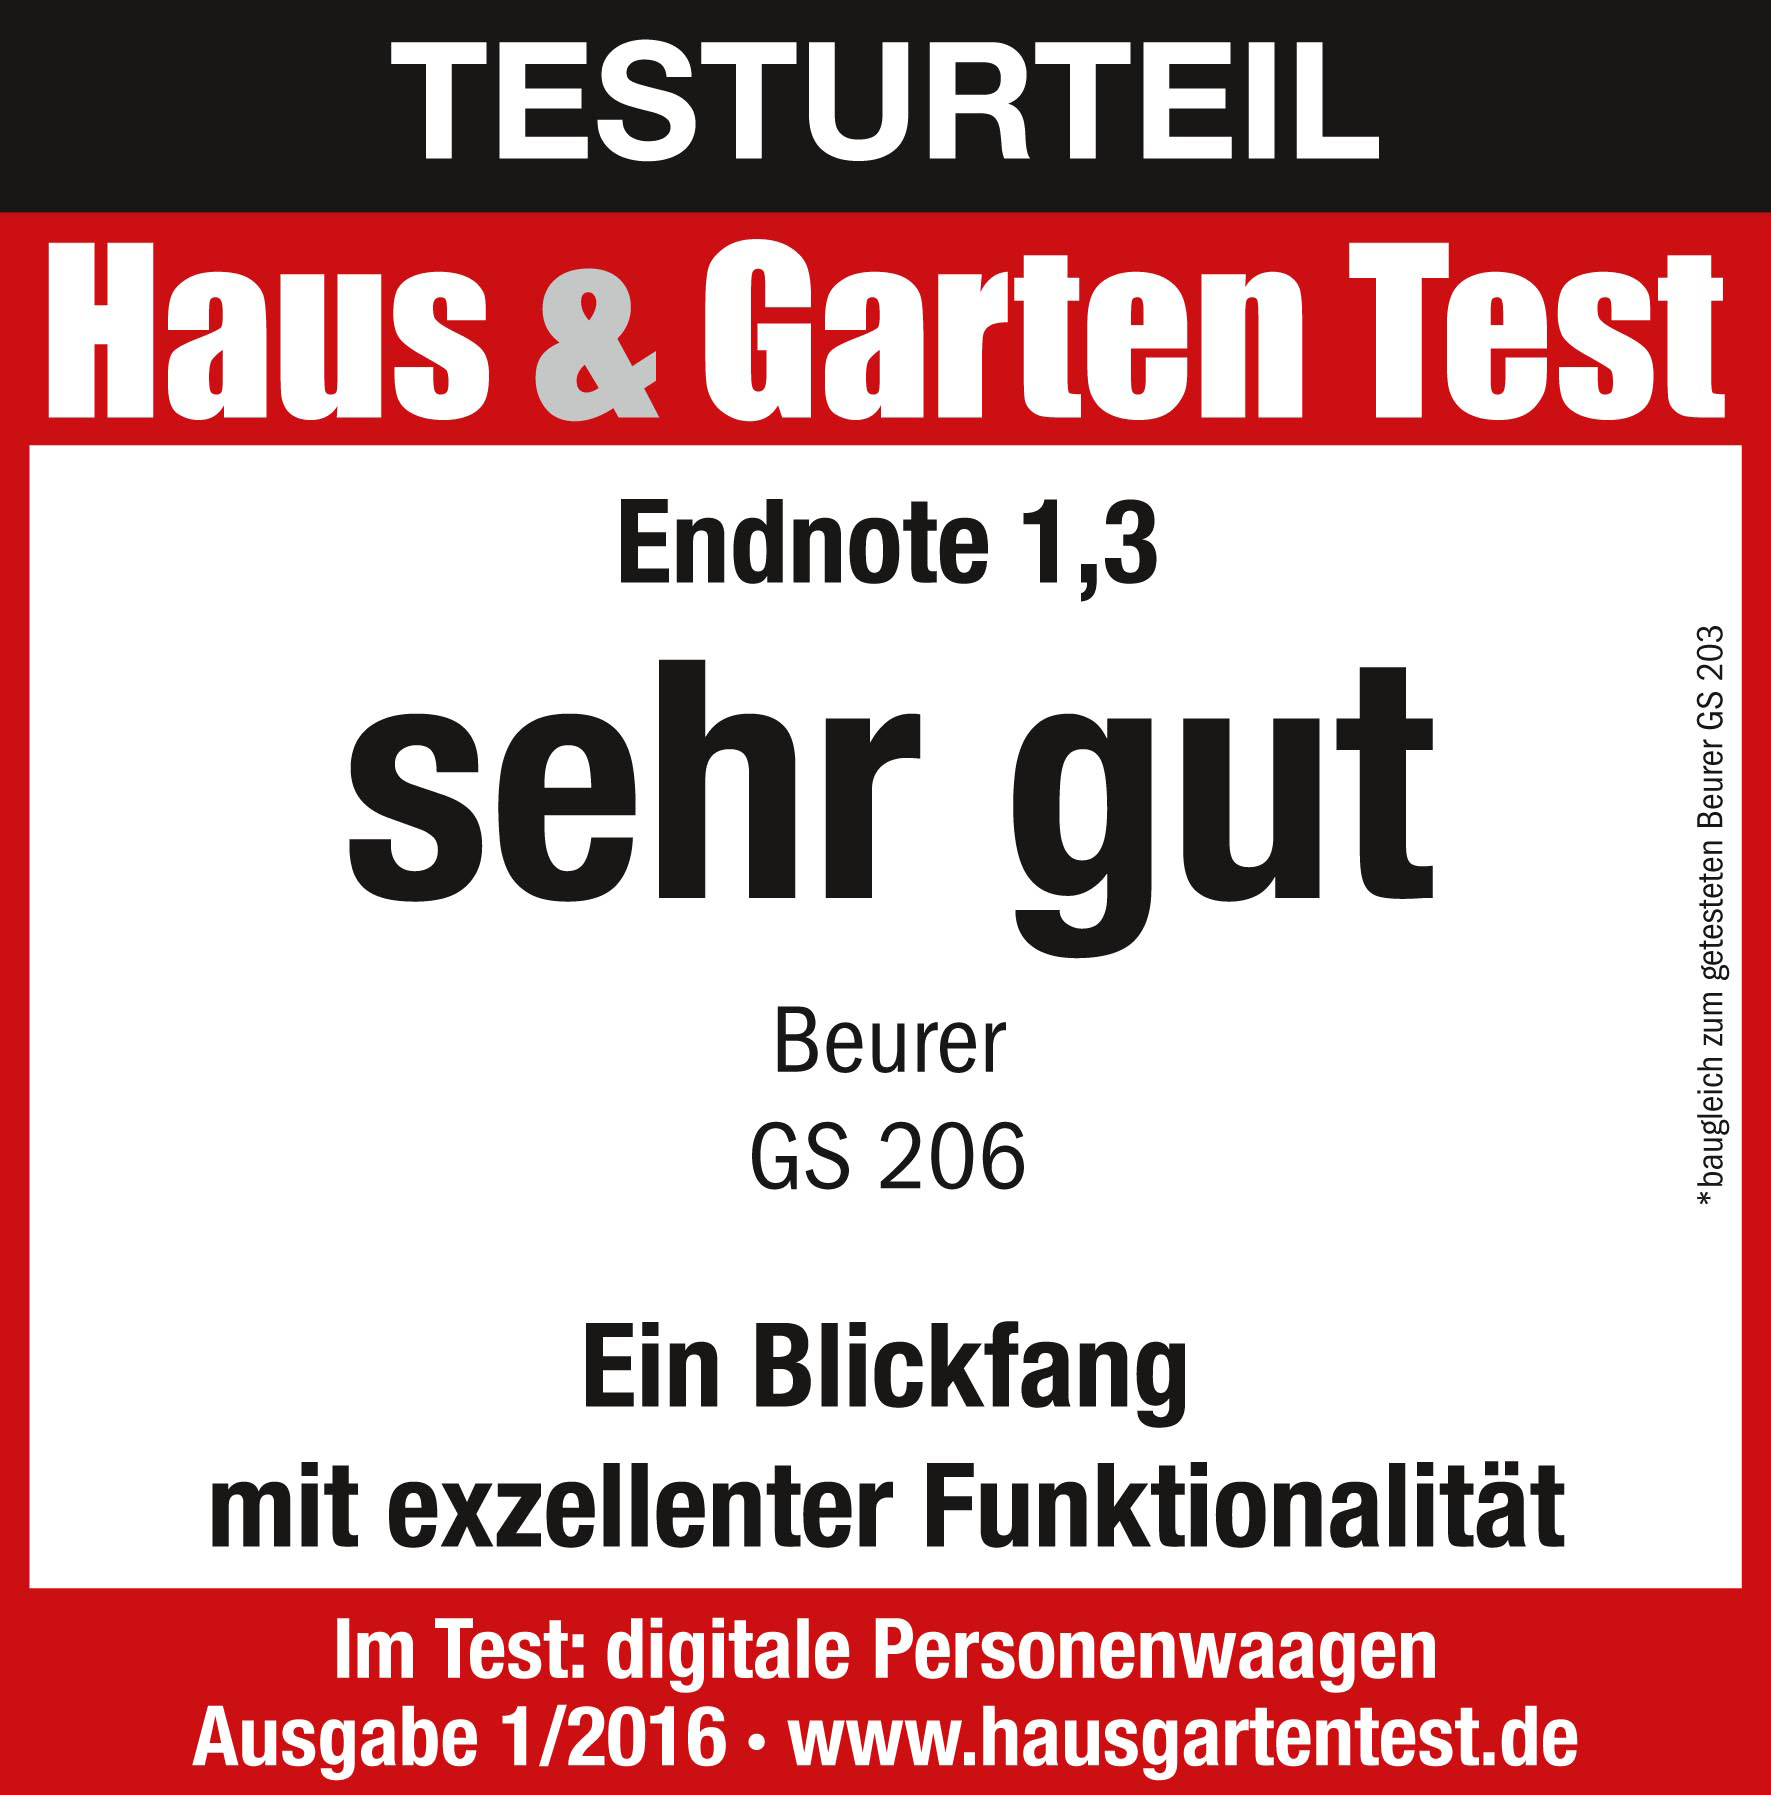 Test result: (1.3) very good for the Beurer GS 206 Squares glass bathroom scale, 01/2016